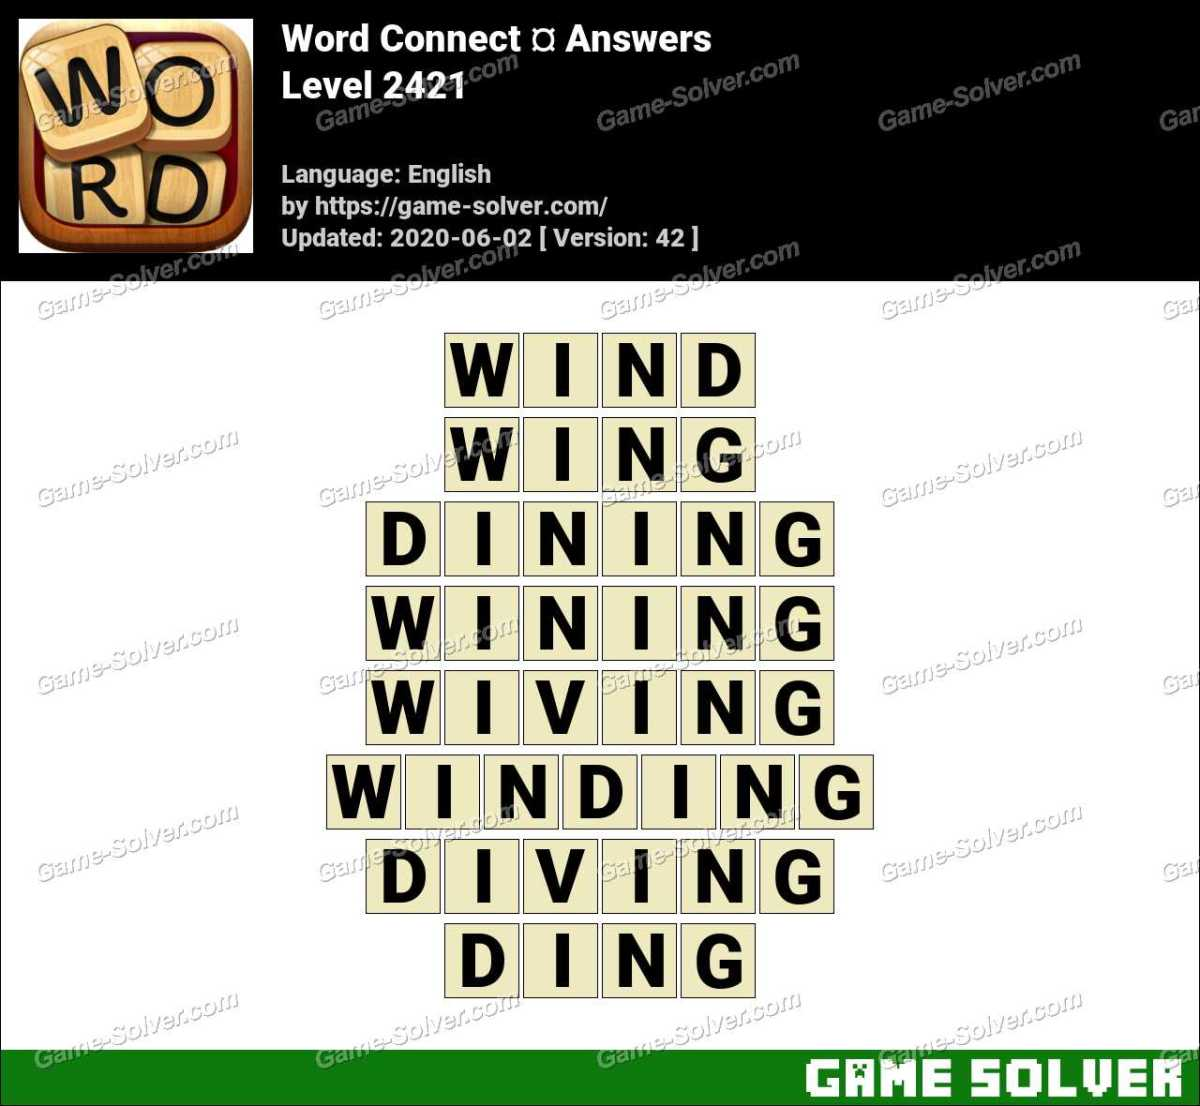 Word Connect Level 2421 Answers